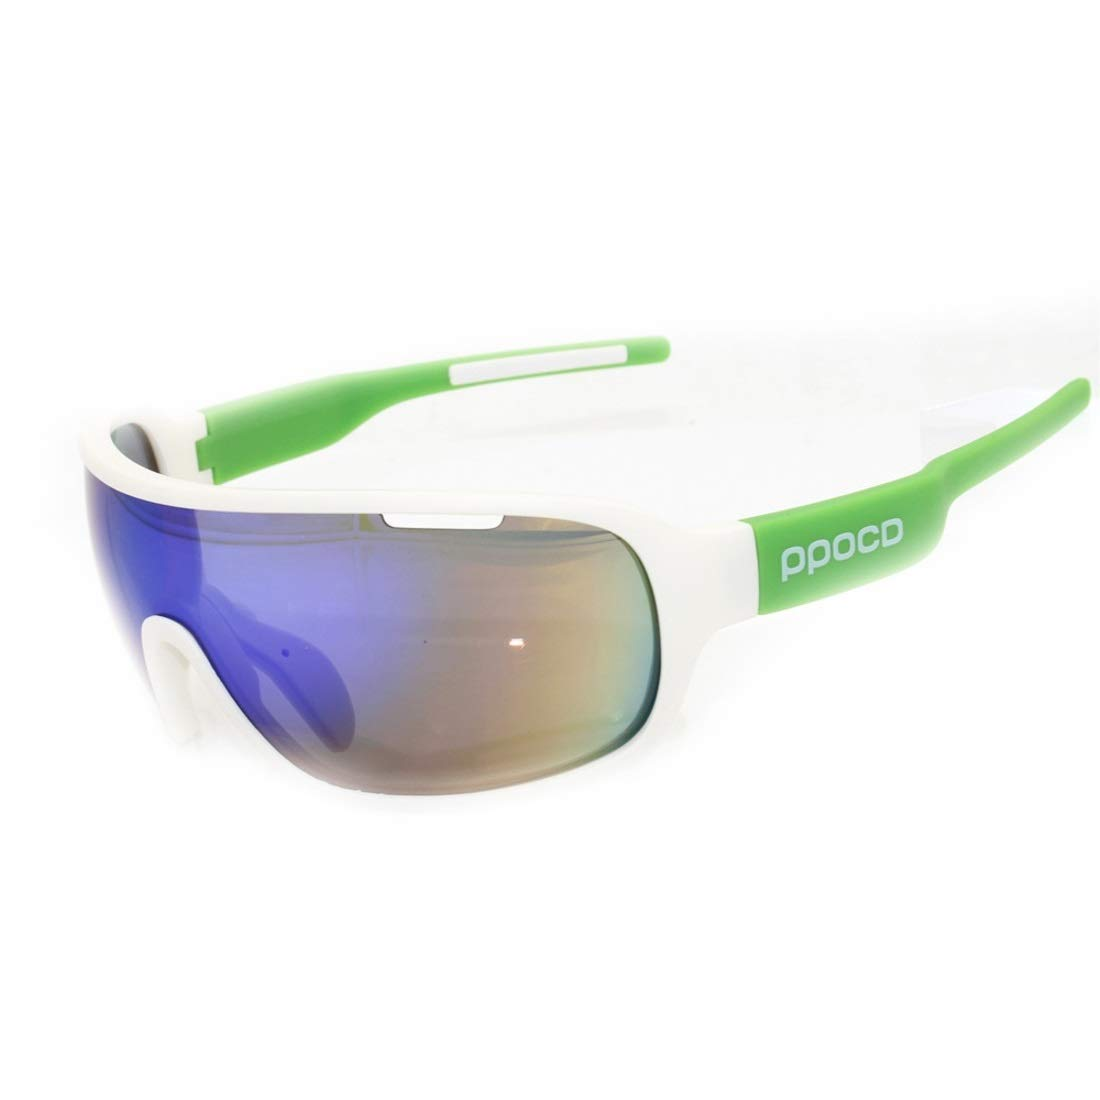 BAOYIT Outdoor Riding Windproof Sand-Proof Glasses Men and Women Riding Equipment Color Changing Lens Sports Running Glasses (Color : A) by BAOYIT